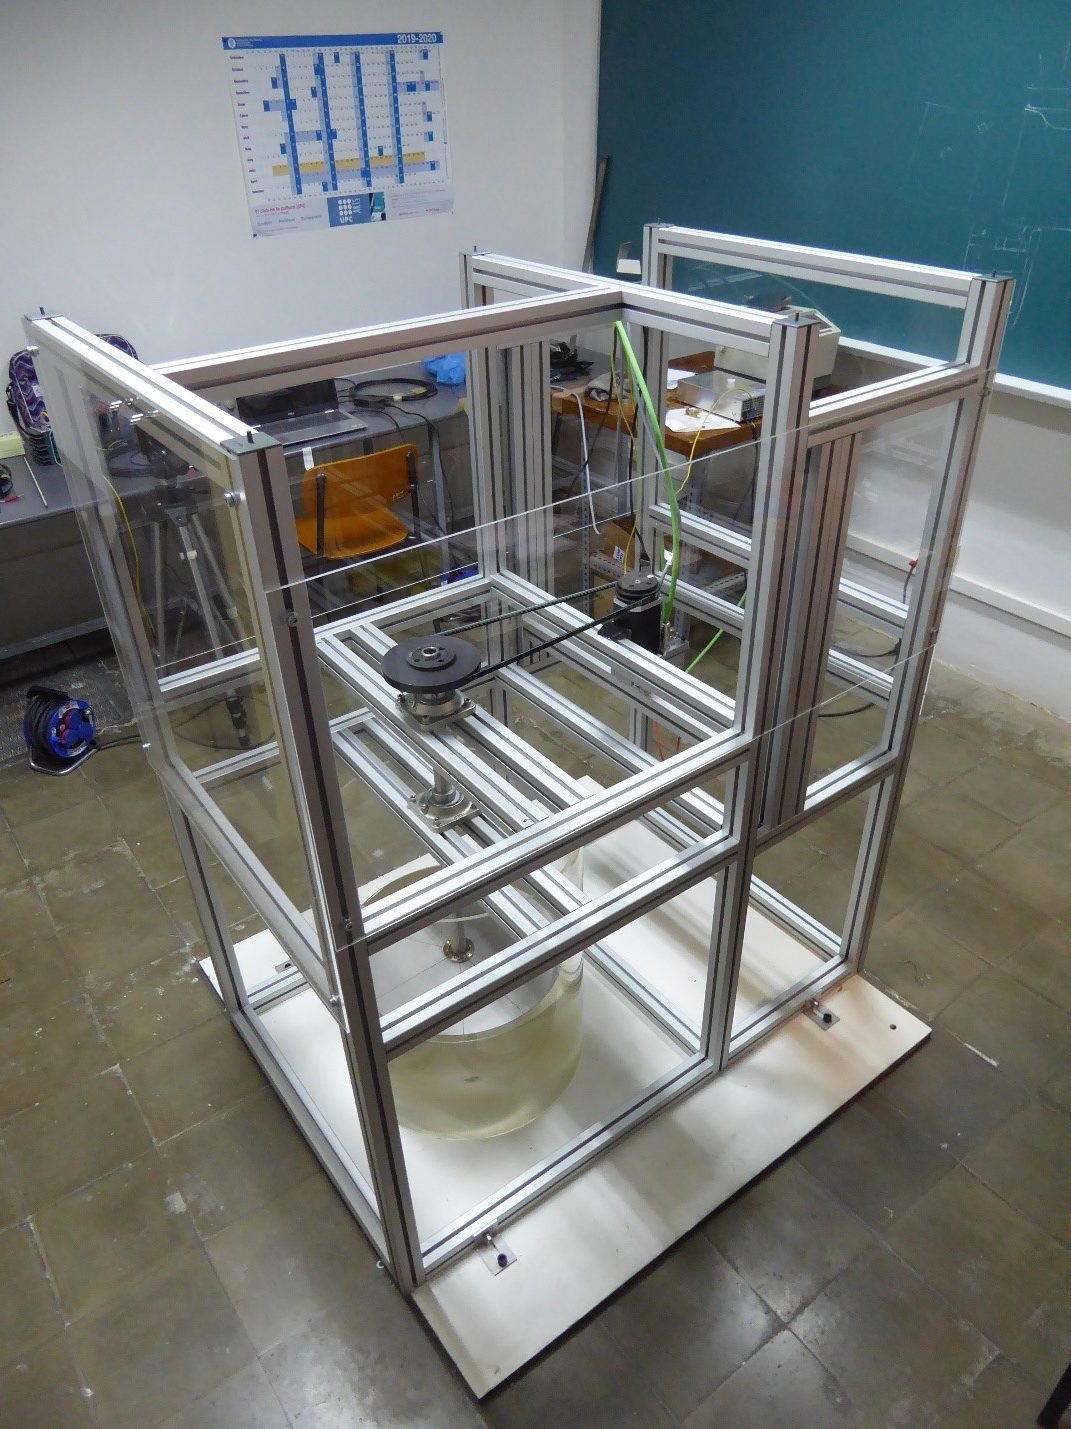 Figure 2-. Test rig final assembly